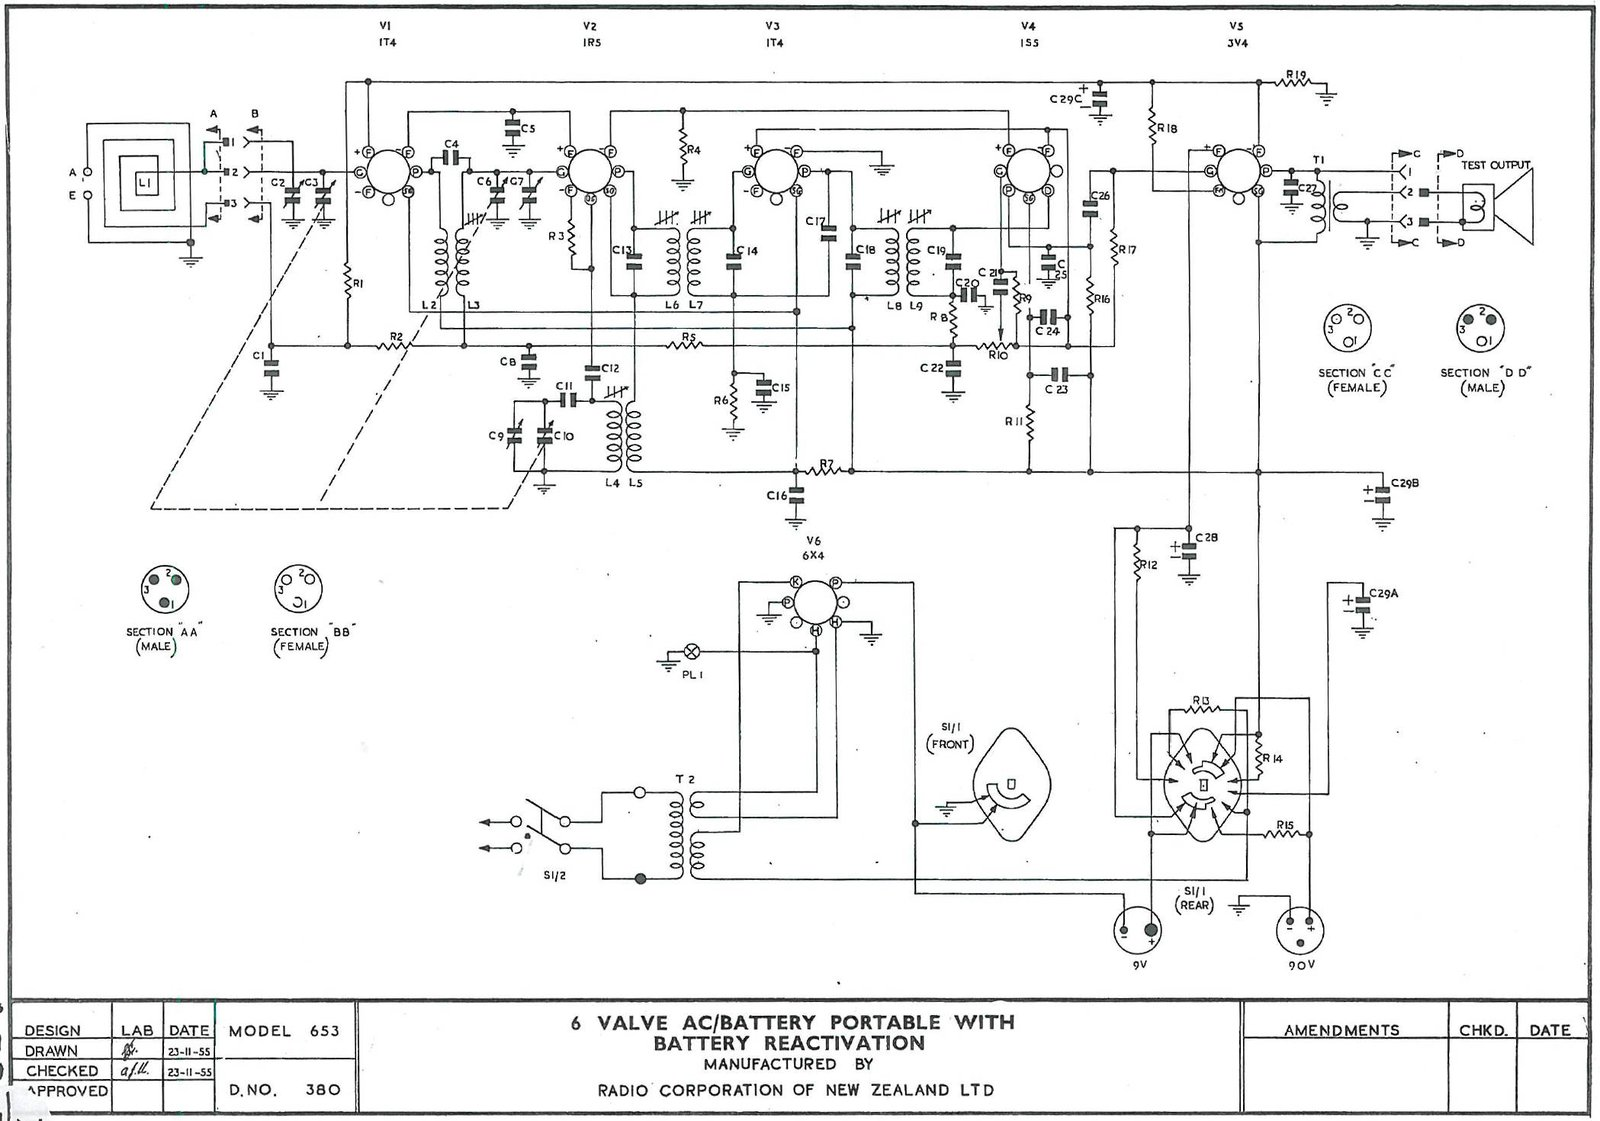 1955 Columbus model 653 Schematic